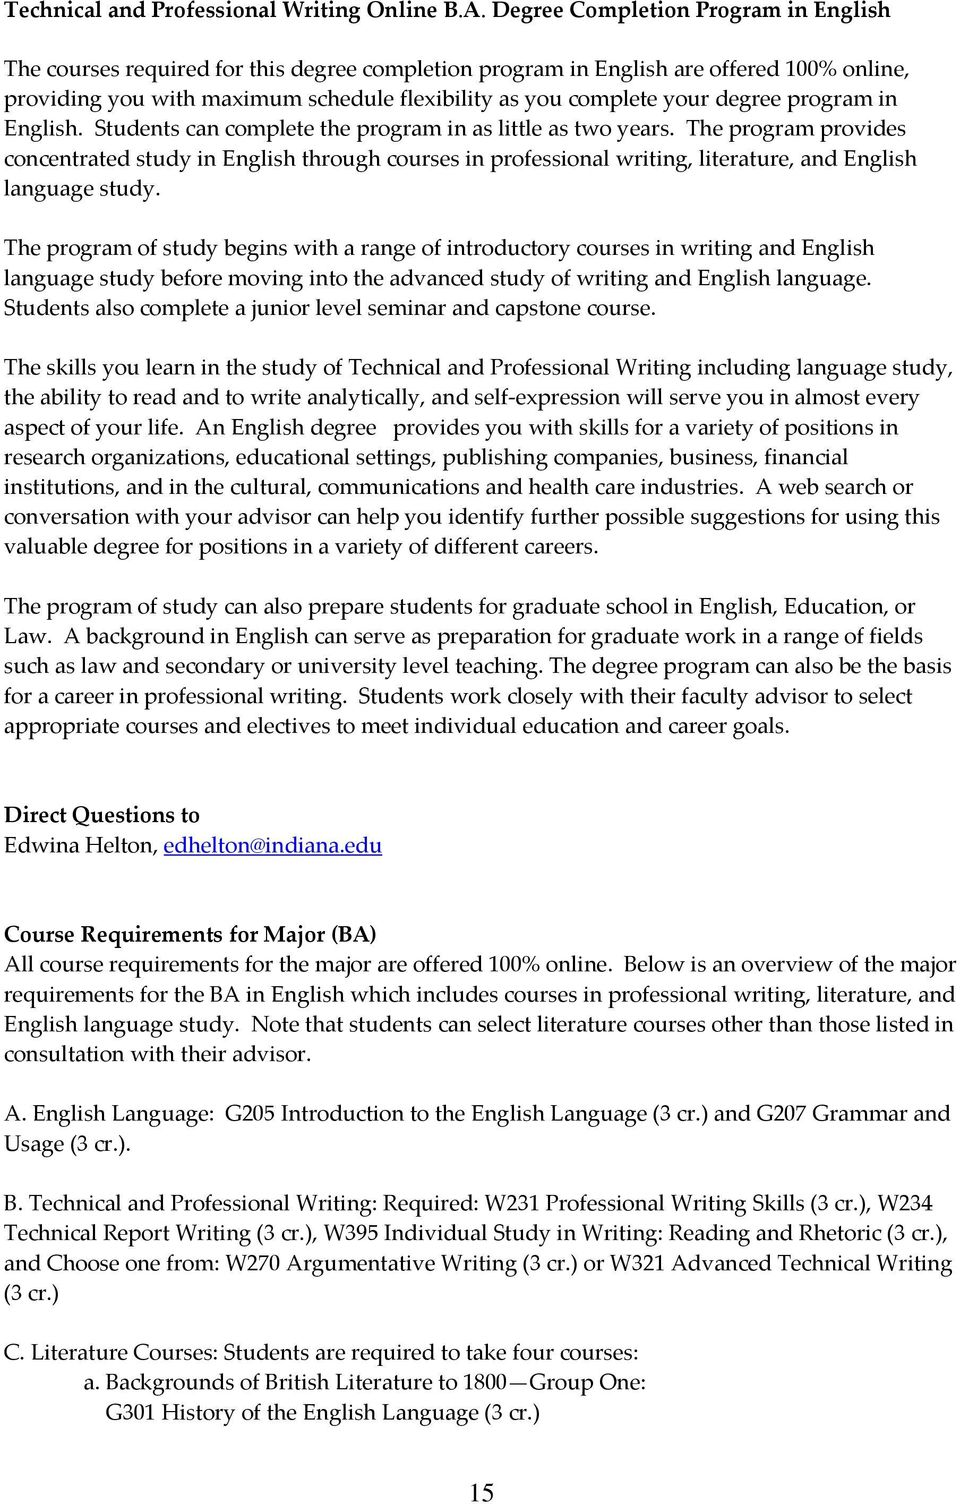 degree program in English. Students can complete the program in as little as two years.